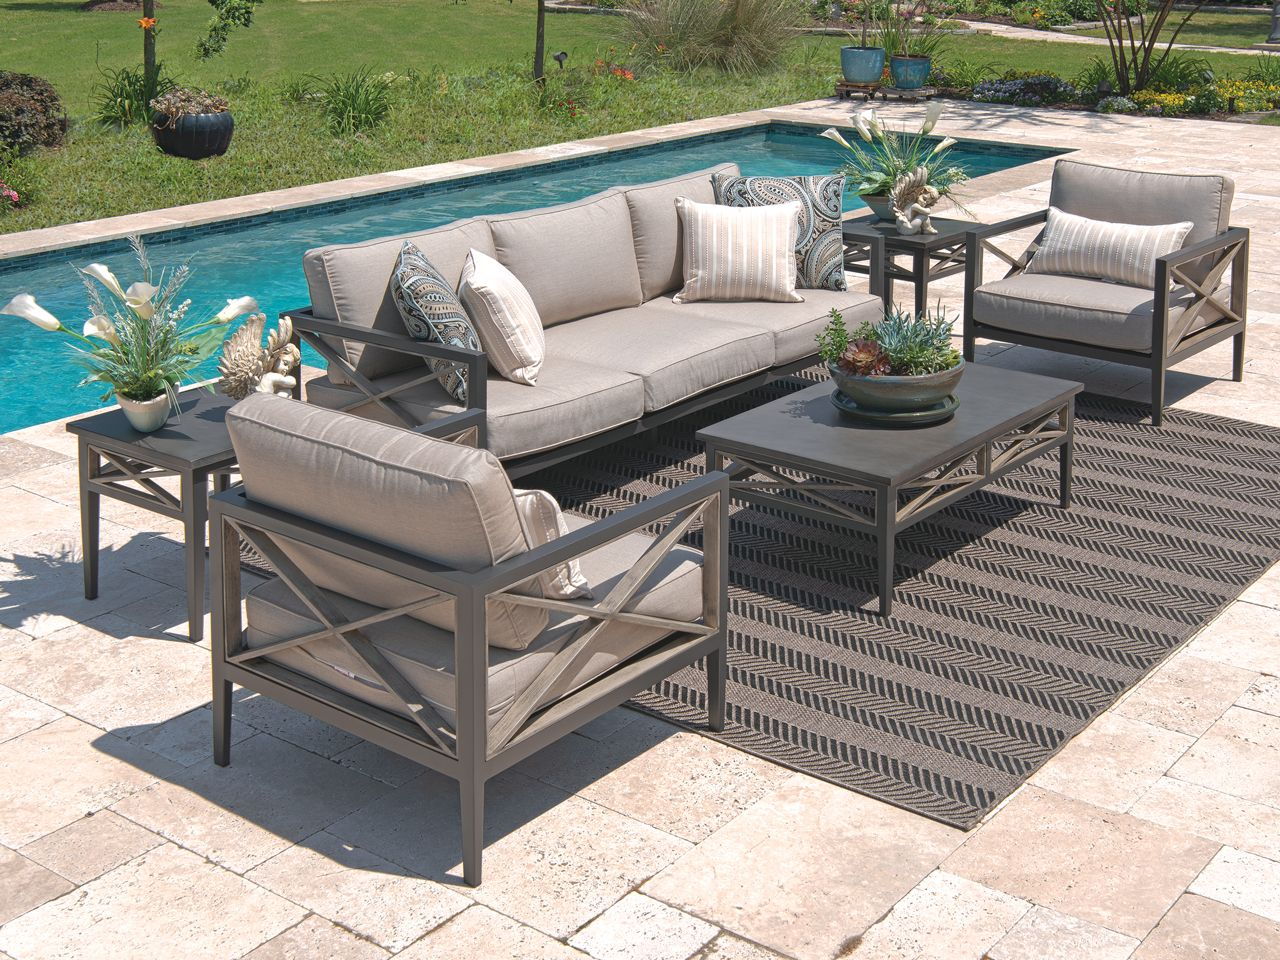 Chair King Backyard Store Now 3499 95 Outdoor Furniture Furniture Outdoor Patio Furniture